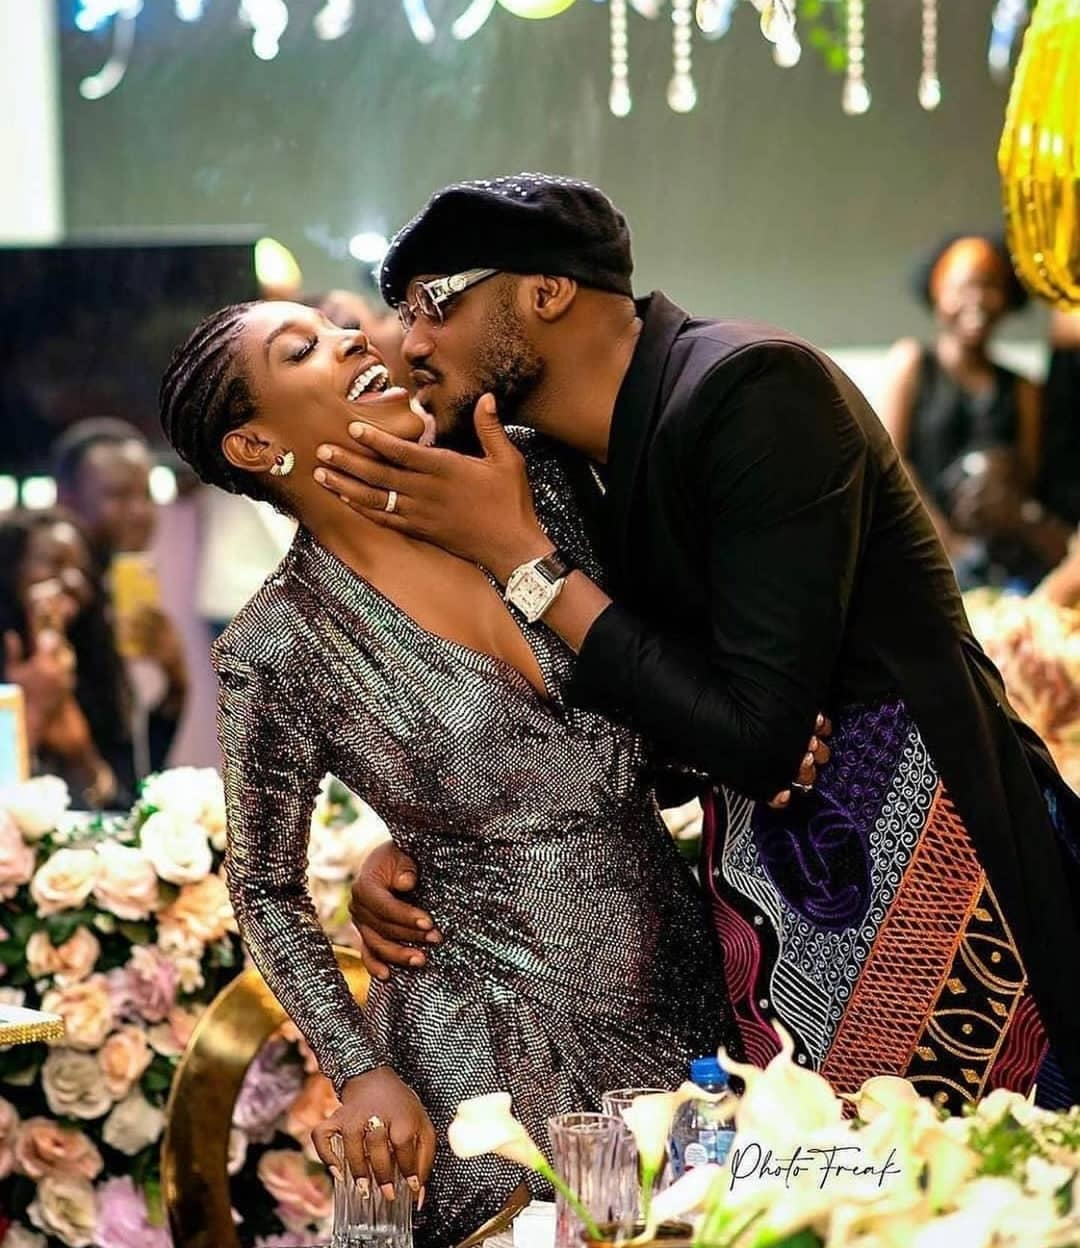 2face Idibia Shares Photo With His Wife, Annie On His 46th Birthday